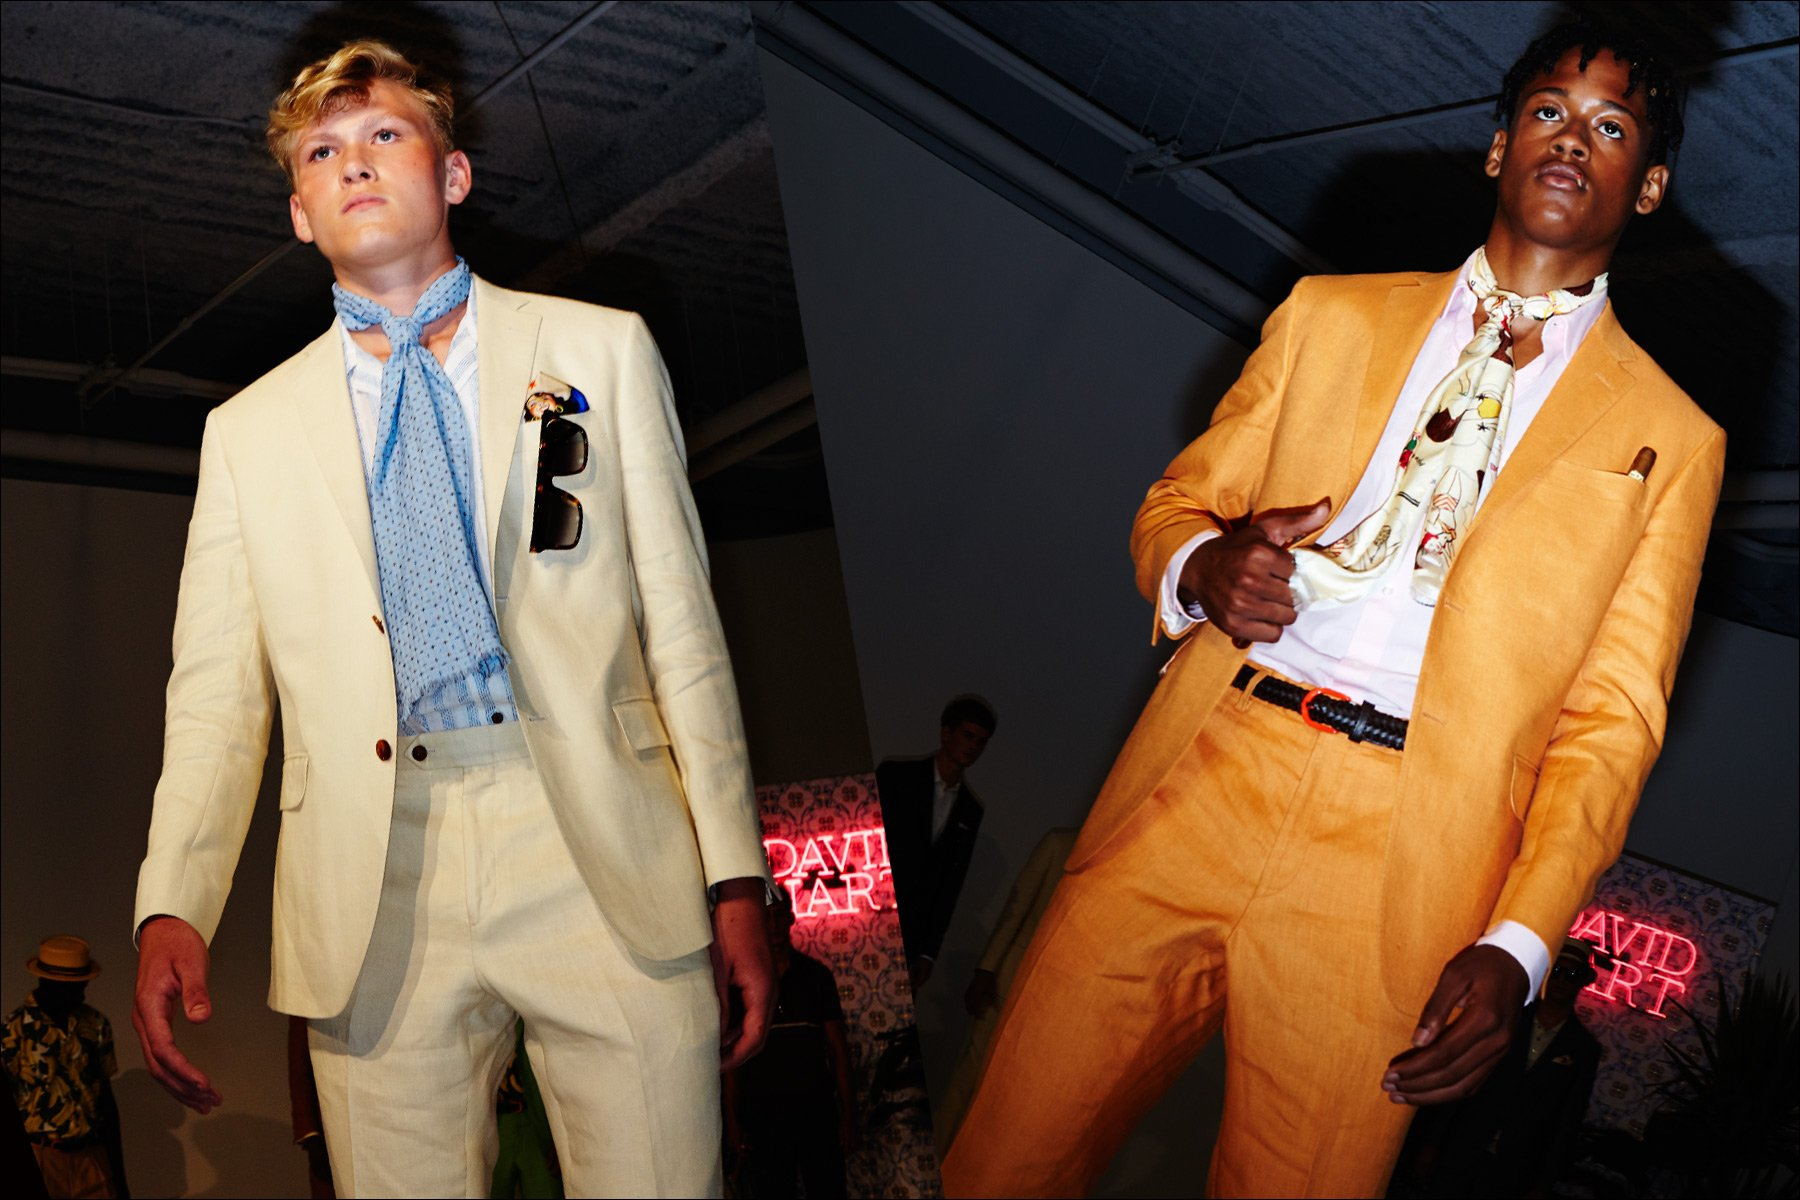 Colorful suits at the David Hart Spring 2018 show. Photographed by Alexander Thompson for Ponyboy magazine New York.